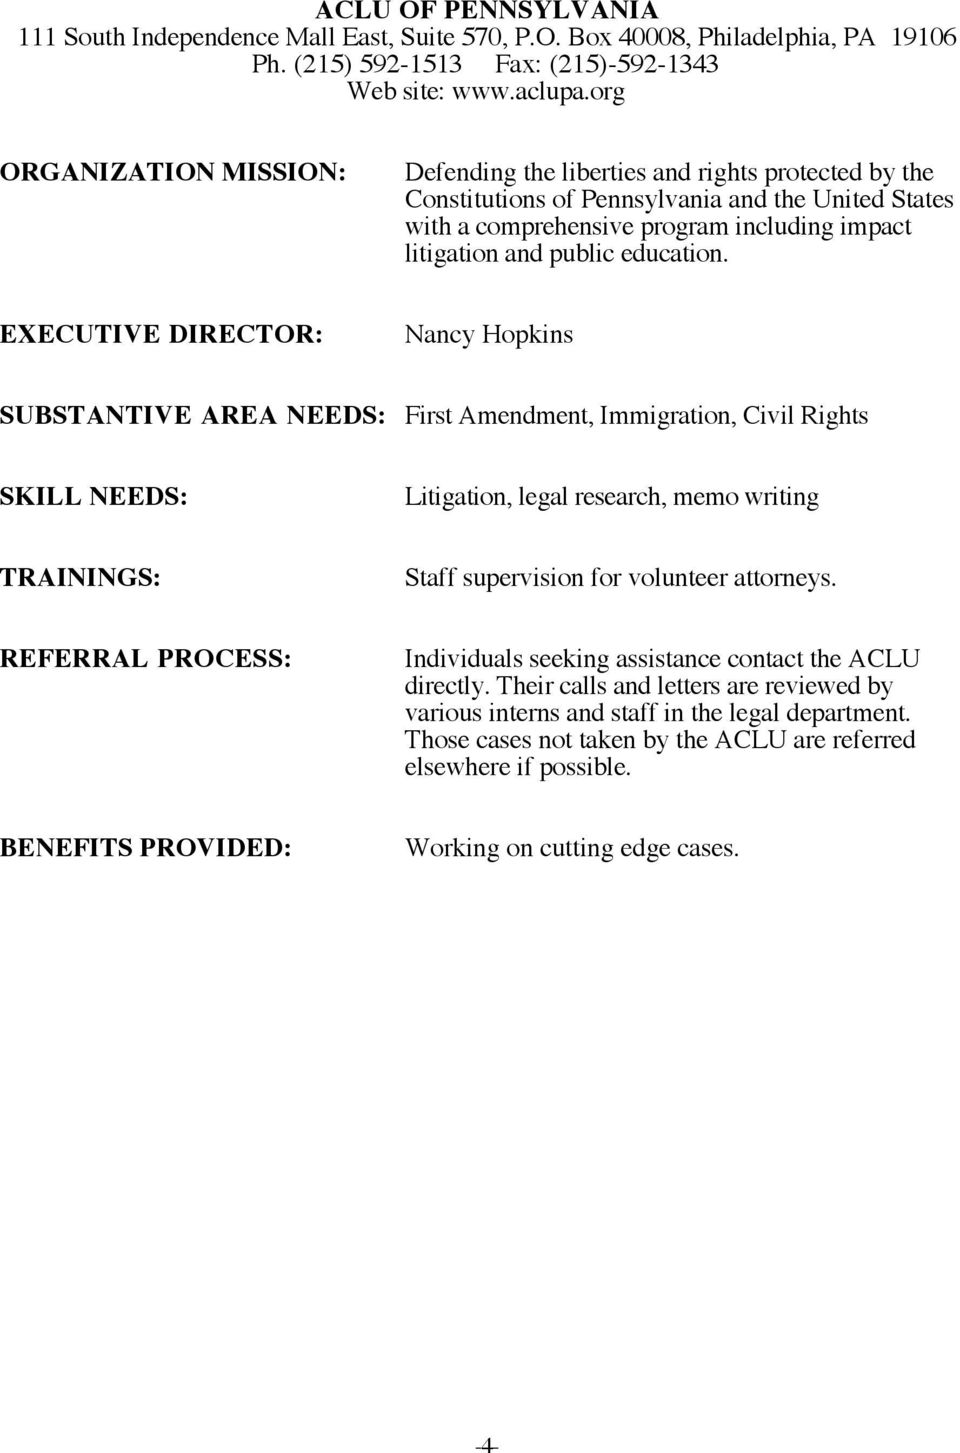 EXECUTIVE DIRECTOR: Nancy Hopkins SUBSTANTIVE AREA NEEDS: First Amendment, Immigration, Civil Rights SKILL NEEDS: Litigation, legal research, memo writing TRAININGS: Staff supervision for volunteer